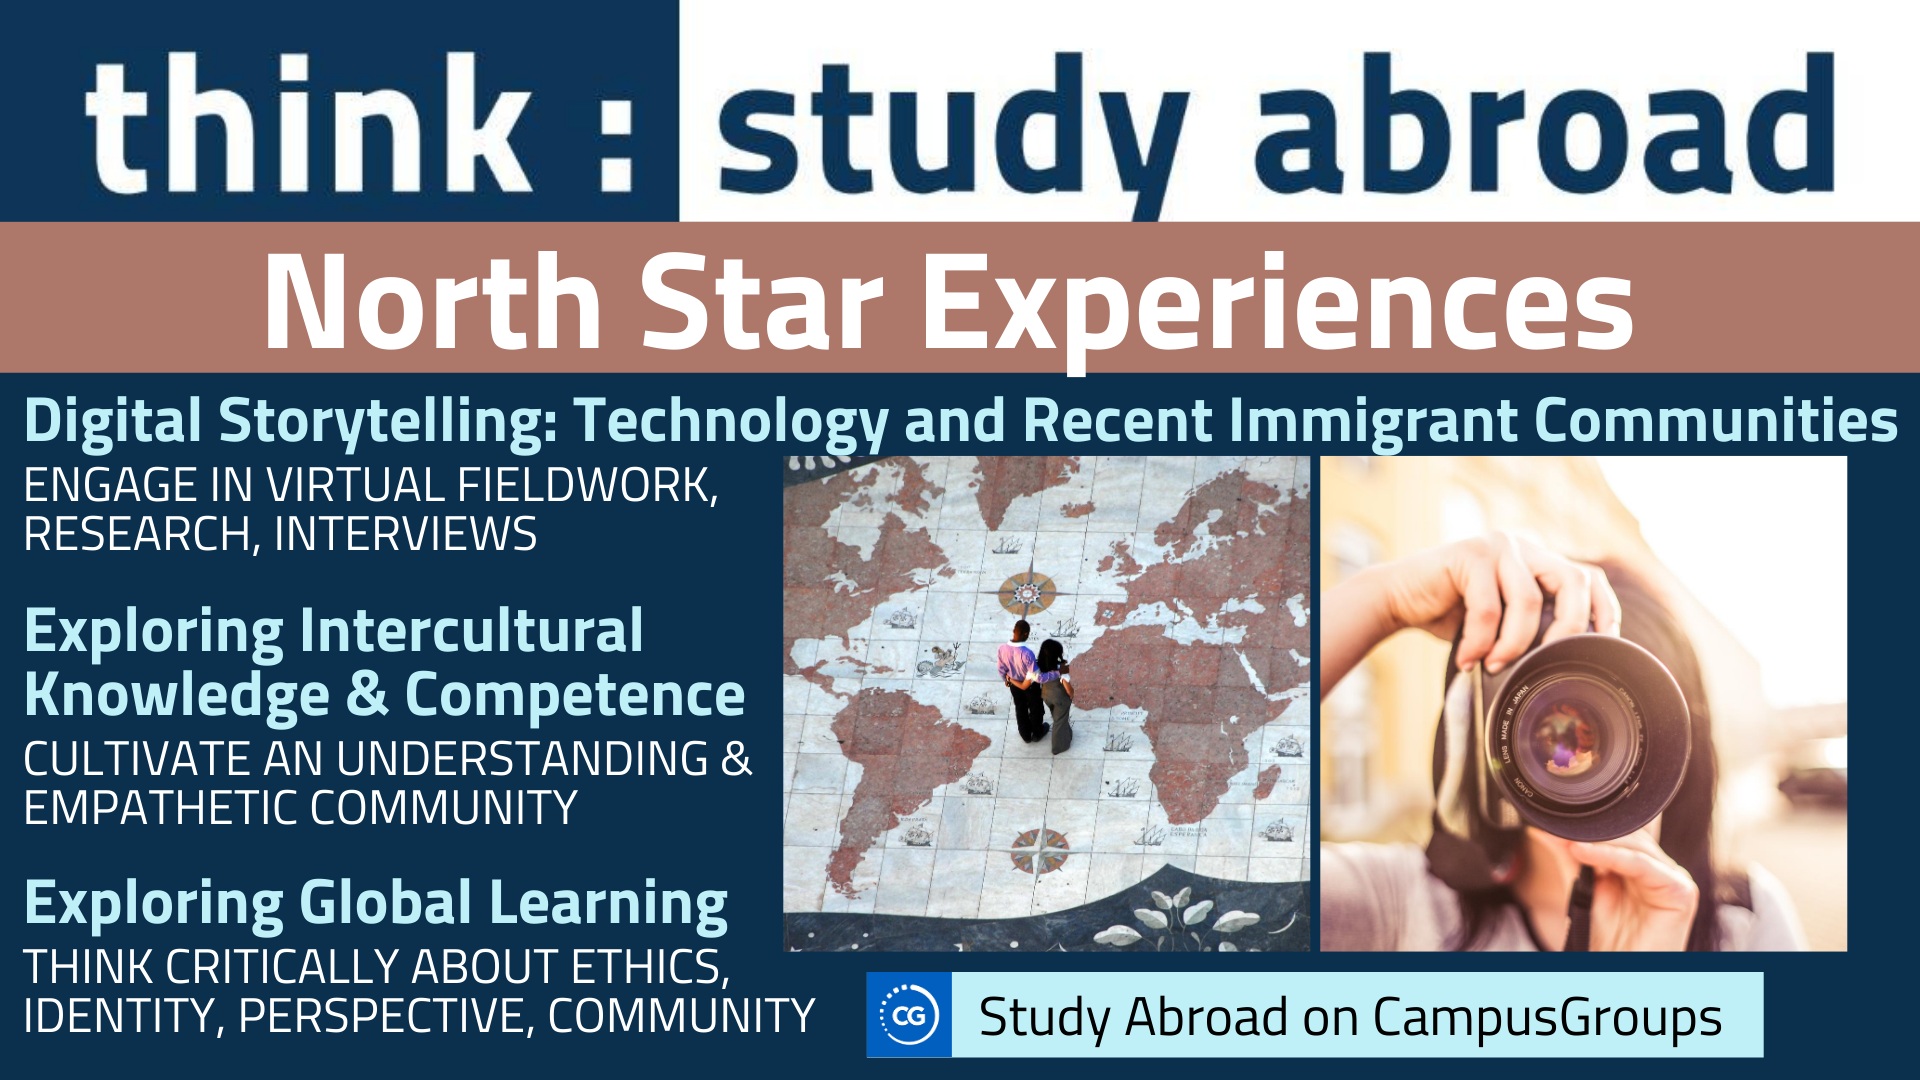 study abroad north star experiences flyer